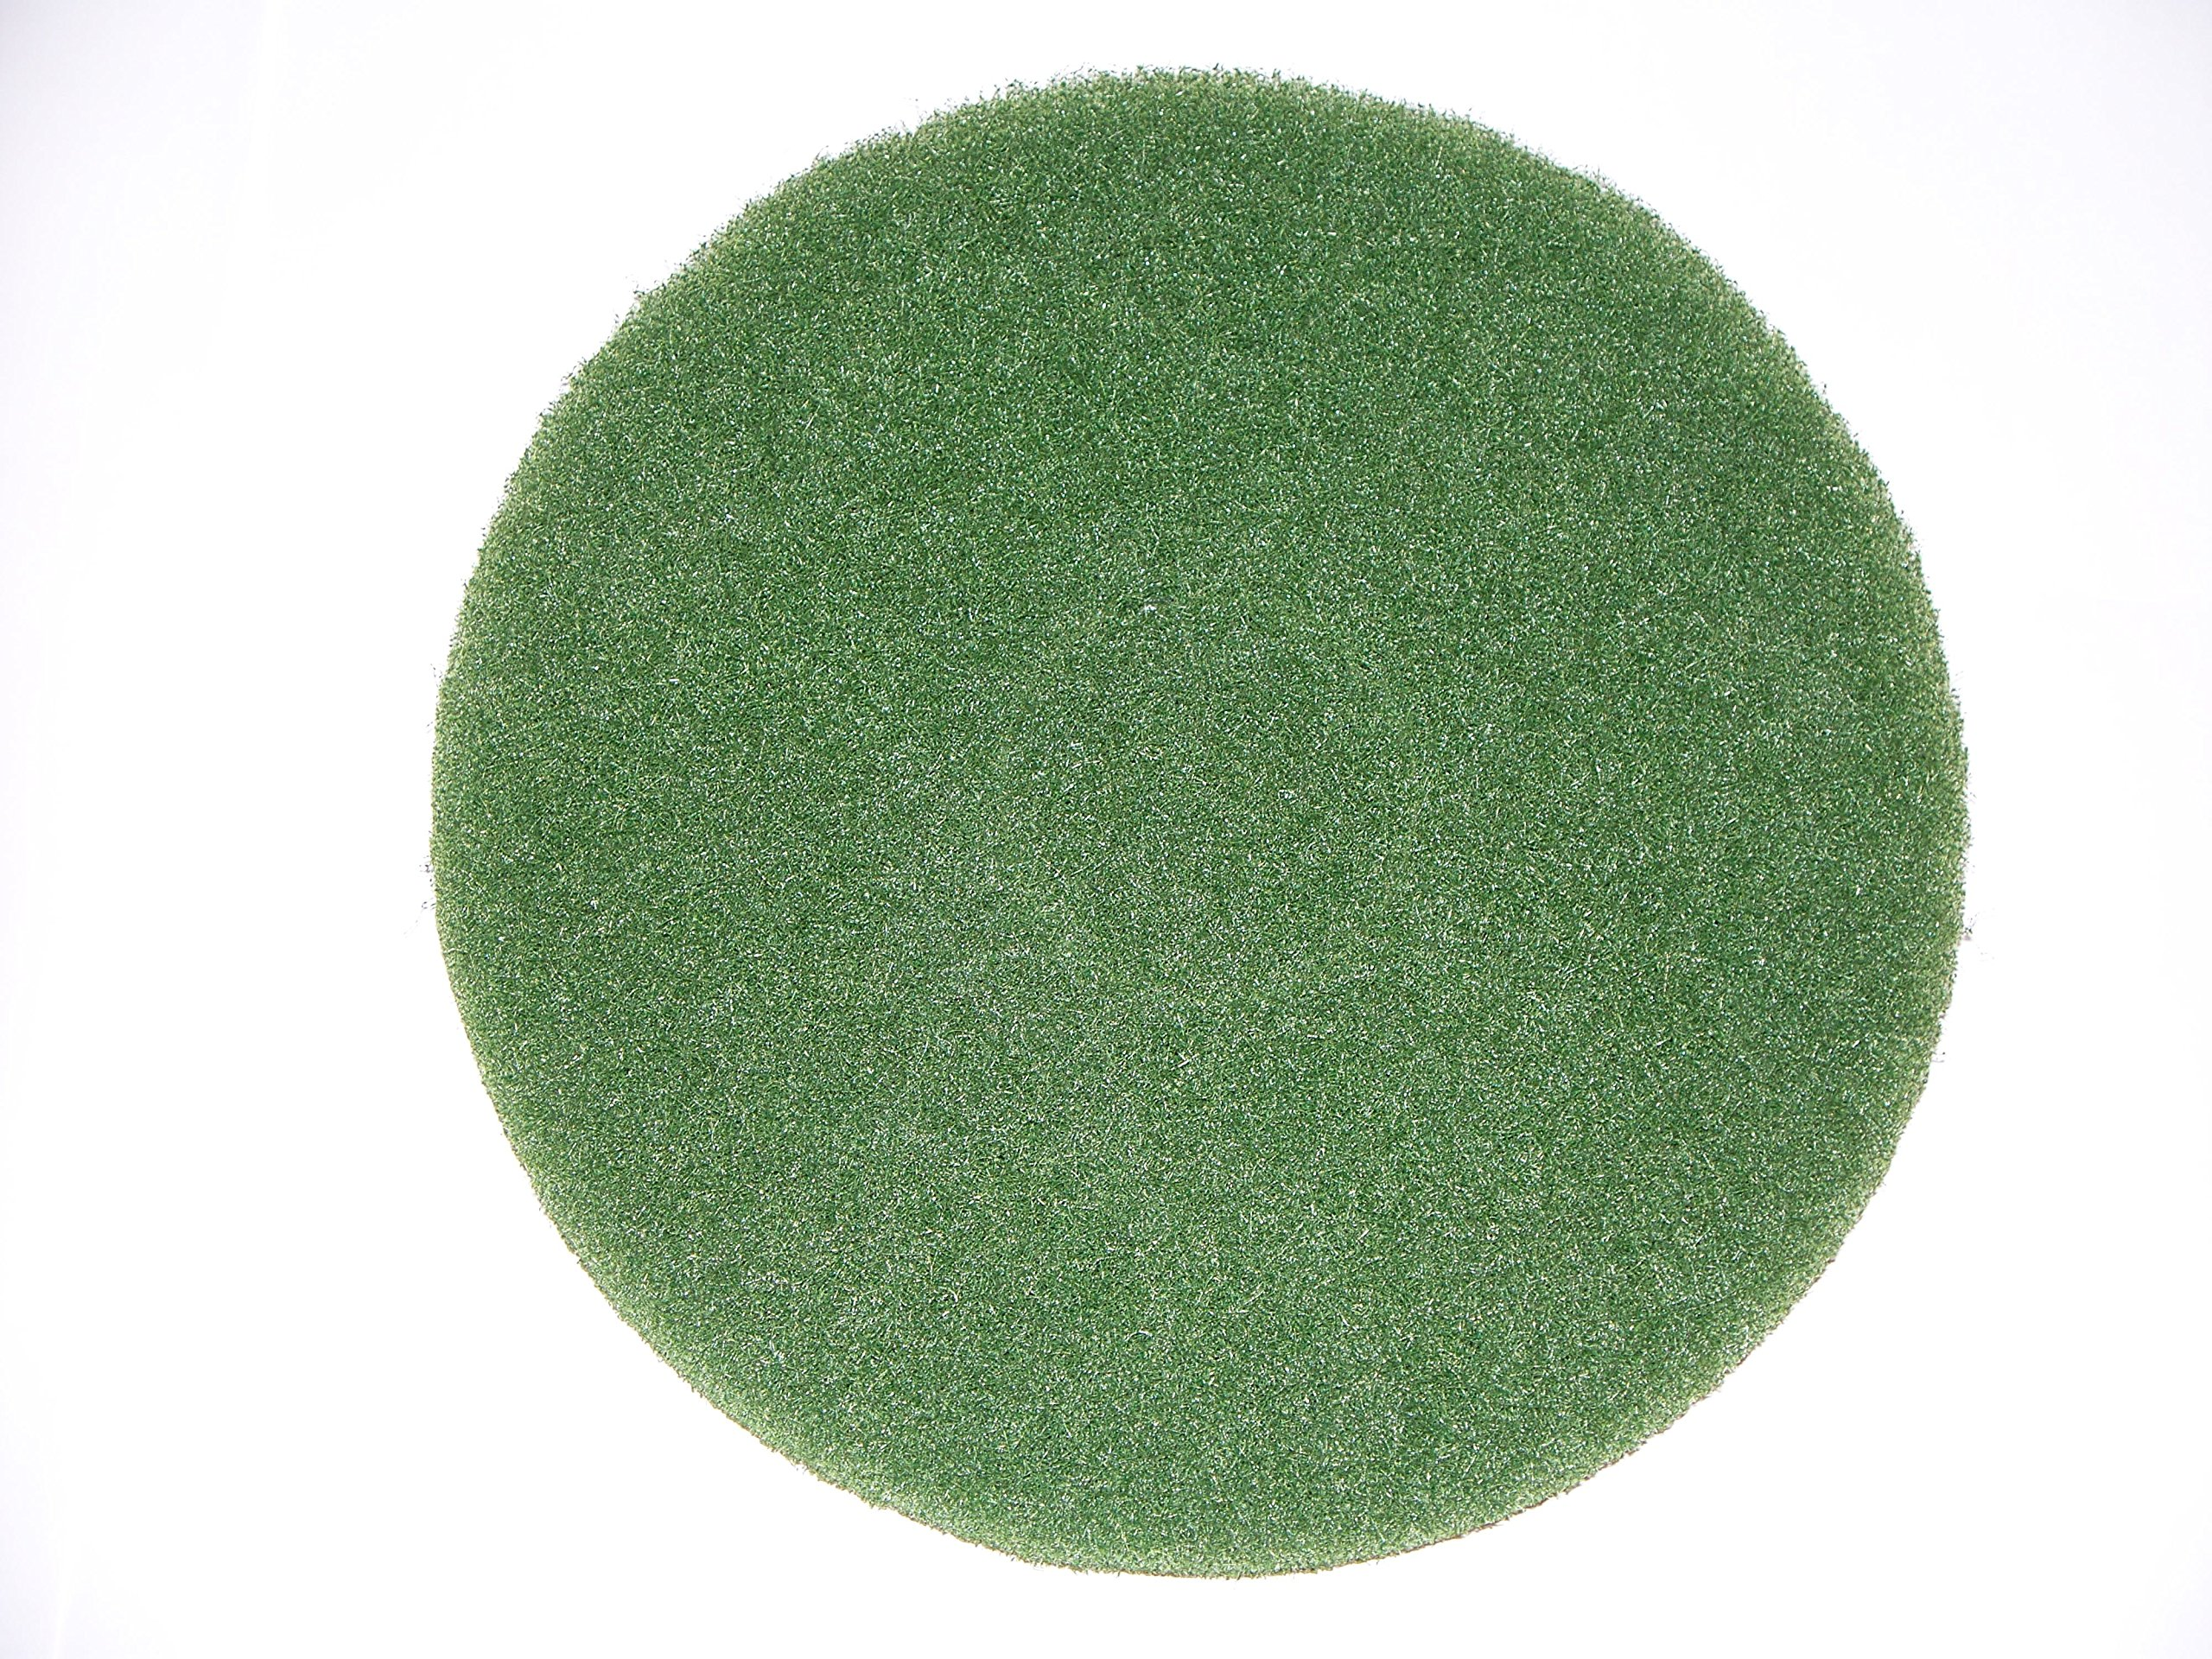 BISSELL BigGreen Commercial 437.056BG-C Cleaning Pad for BGEM9000 Easy Motion Floor Machine, 12'', Green (Pack of 5)